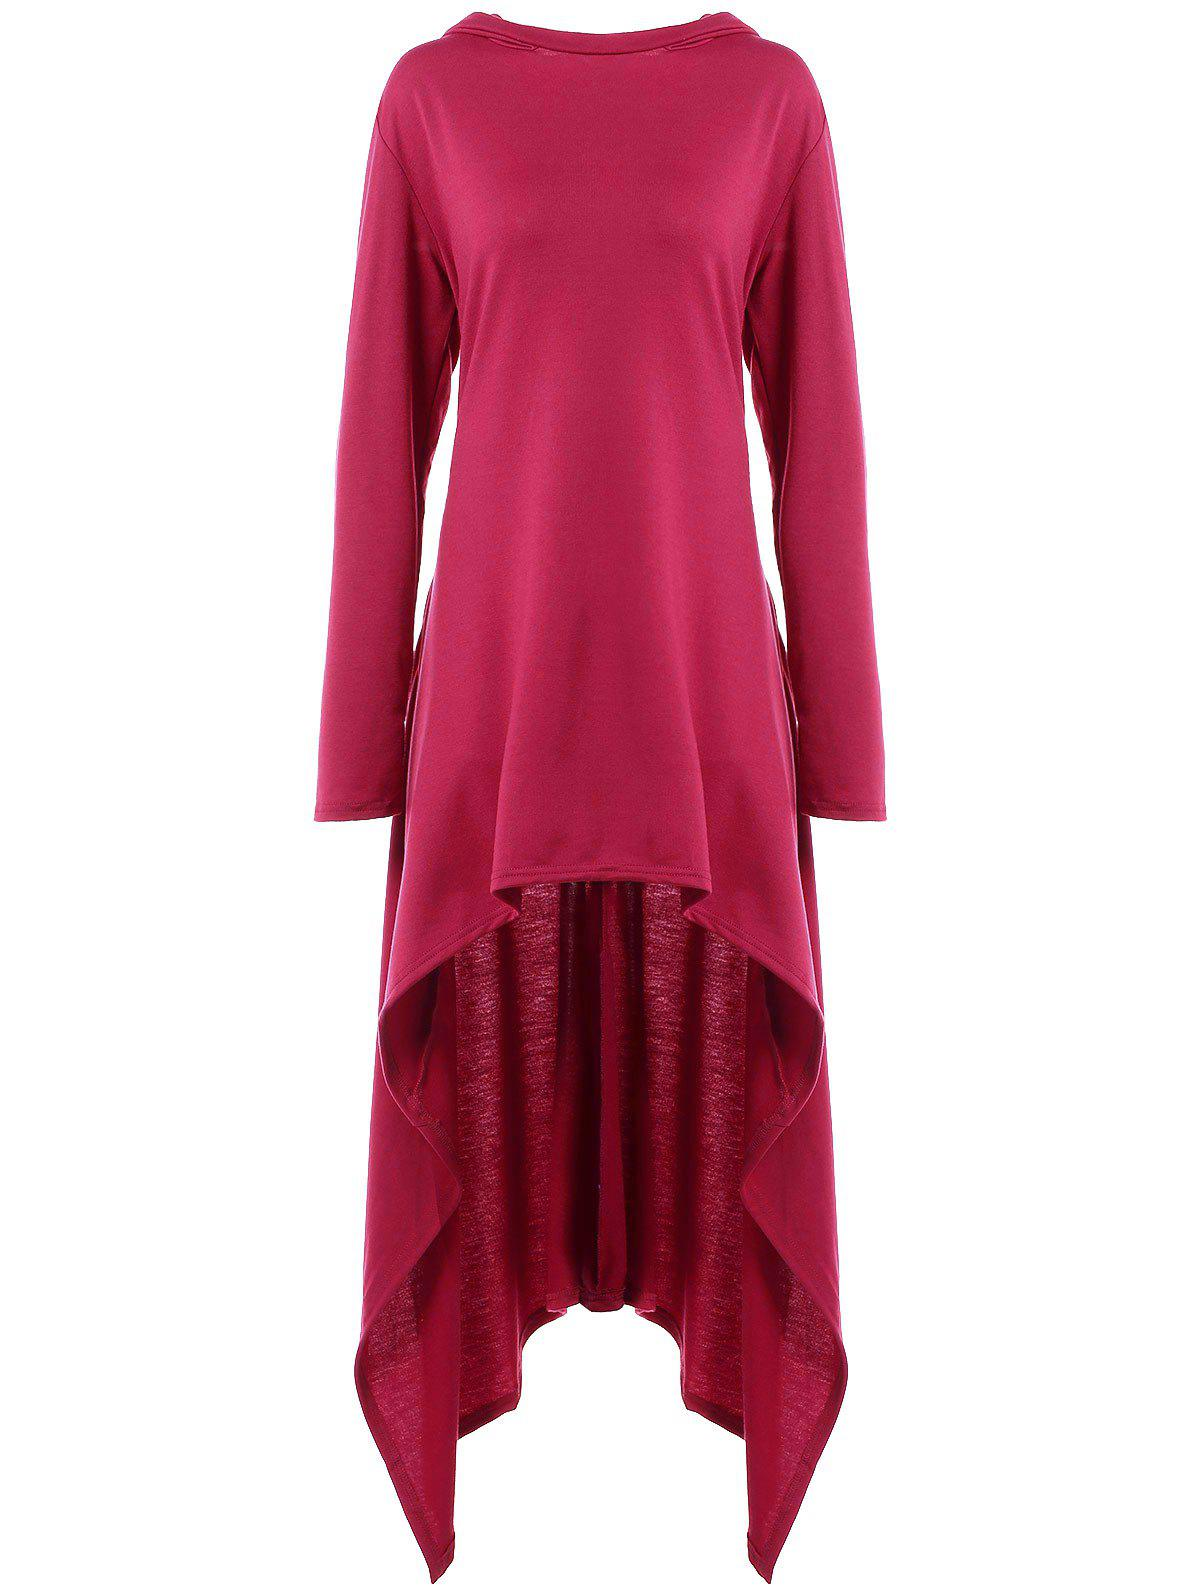 Fashion High Low Hooded Dress with Long Sleeves